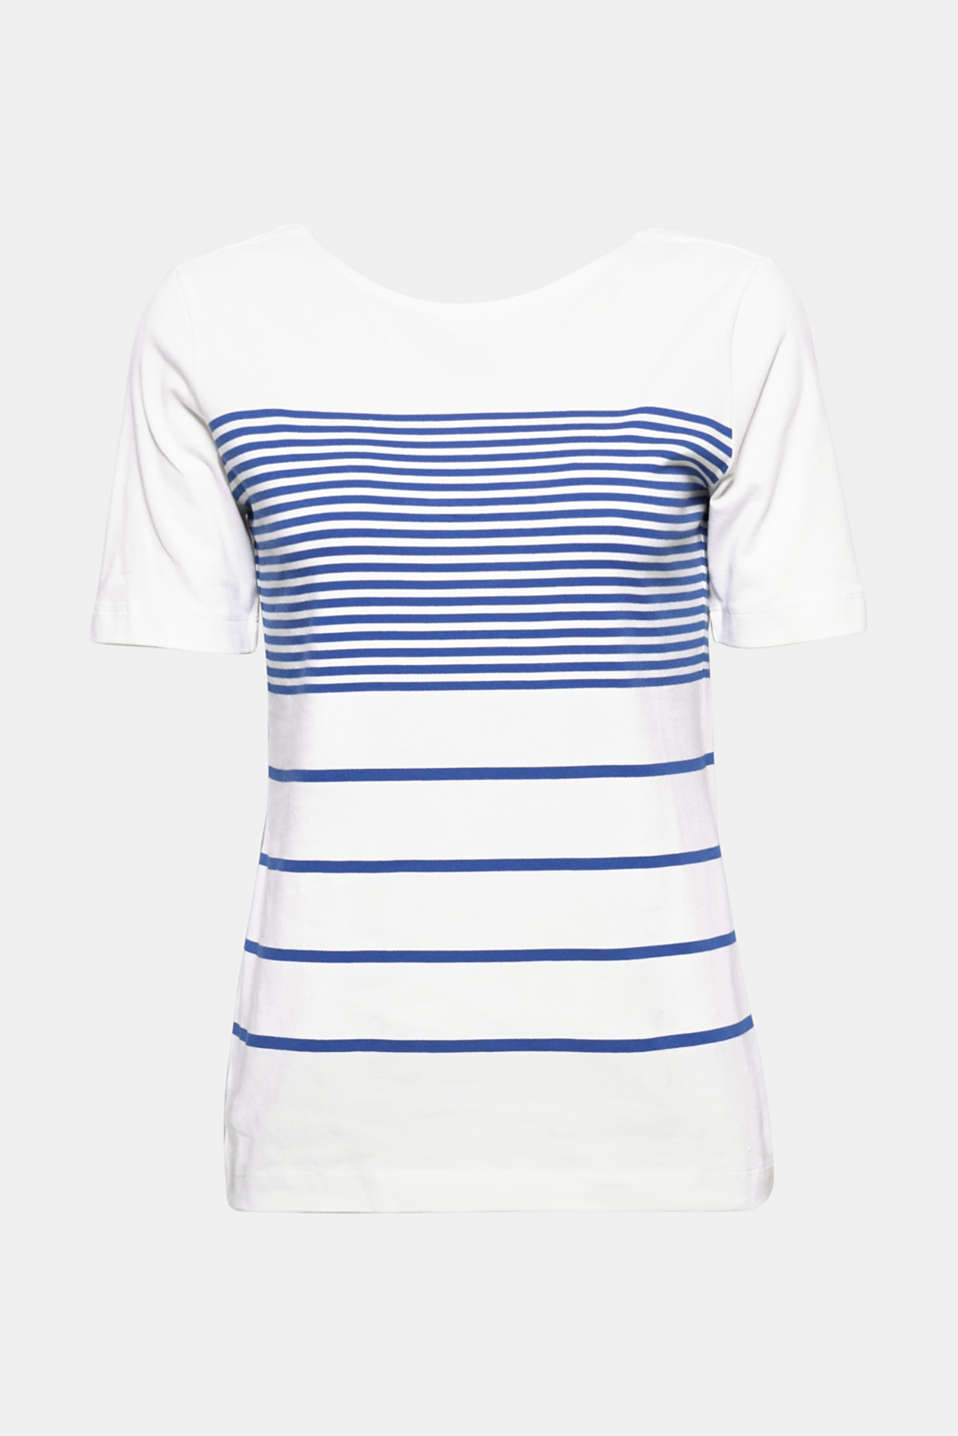 The brand new stripe combo gives this fitted stretch T-shirt with a deep, round back neckline an original, innovative look!